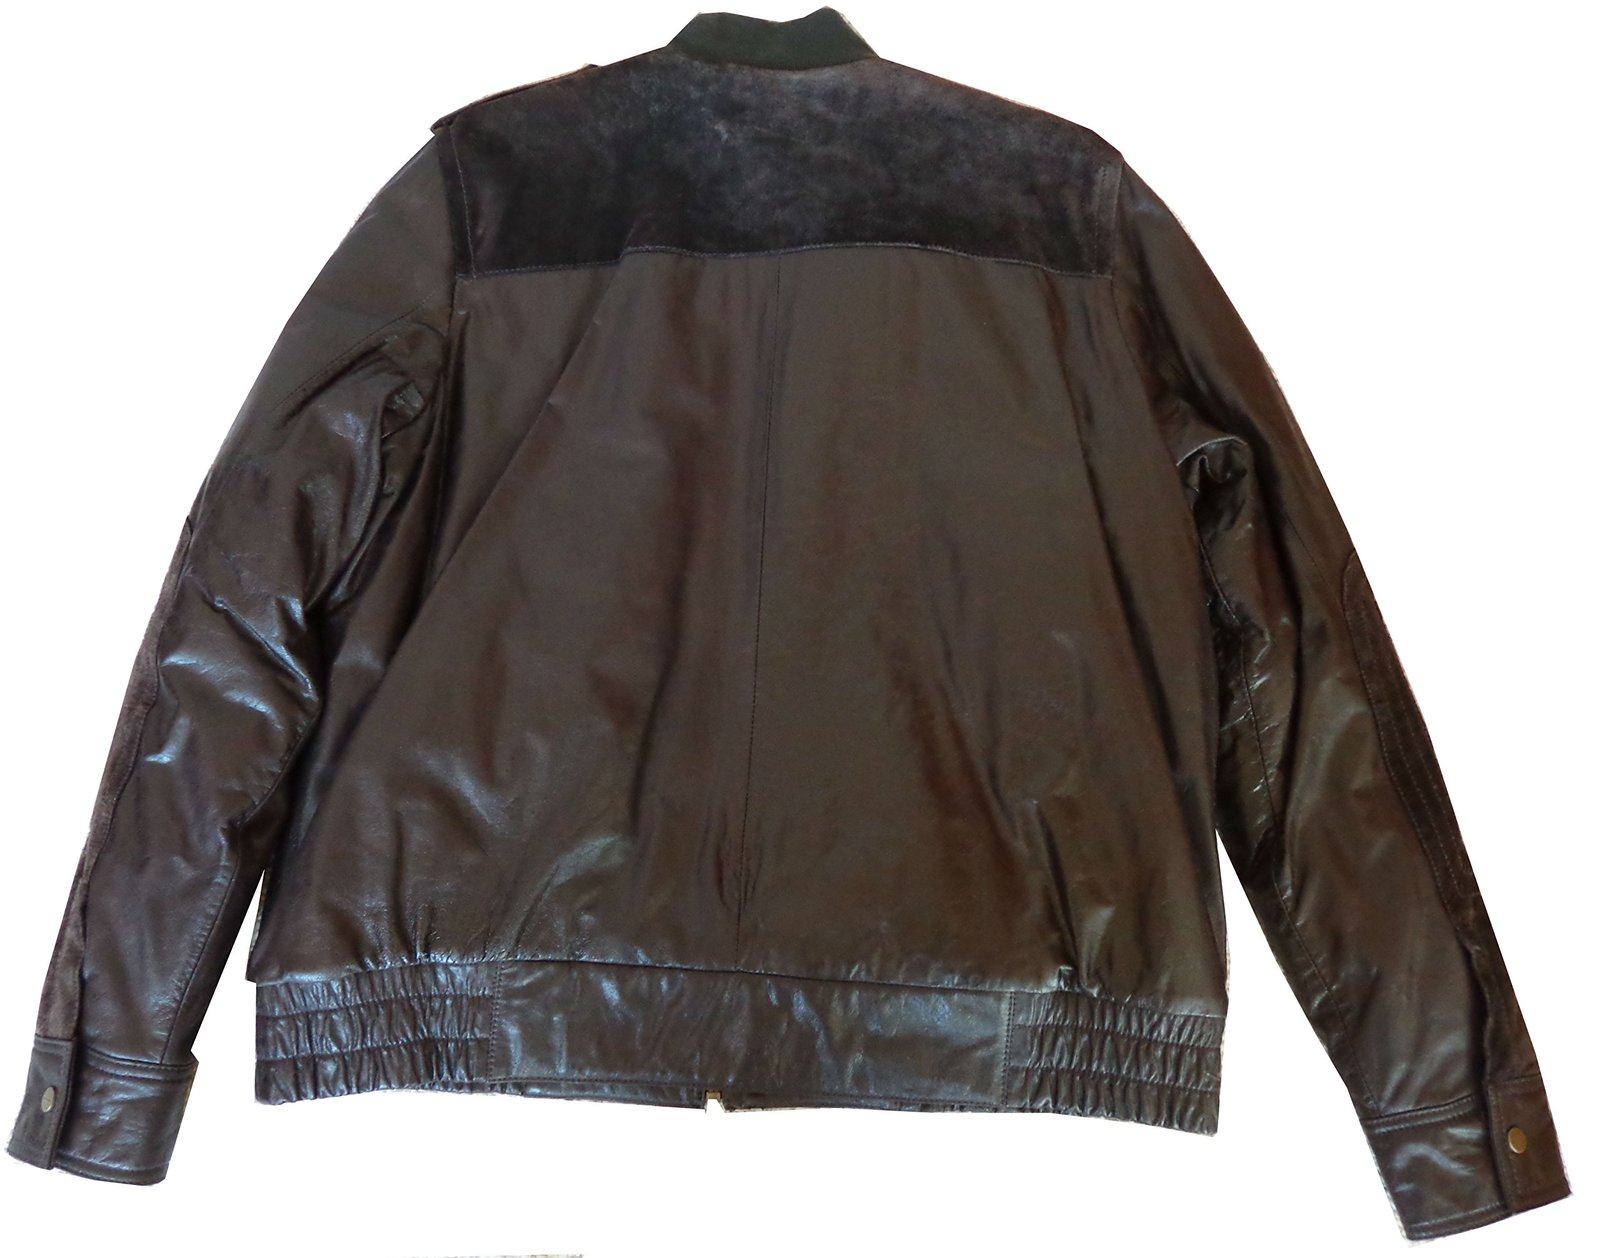 Mens Ciro Citterio and Michael Michelle leather jackets, vests, chaps, motorcycle jackets, fashion coats and more.